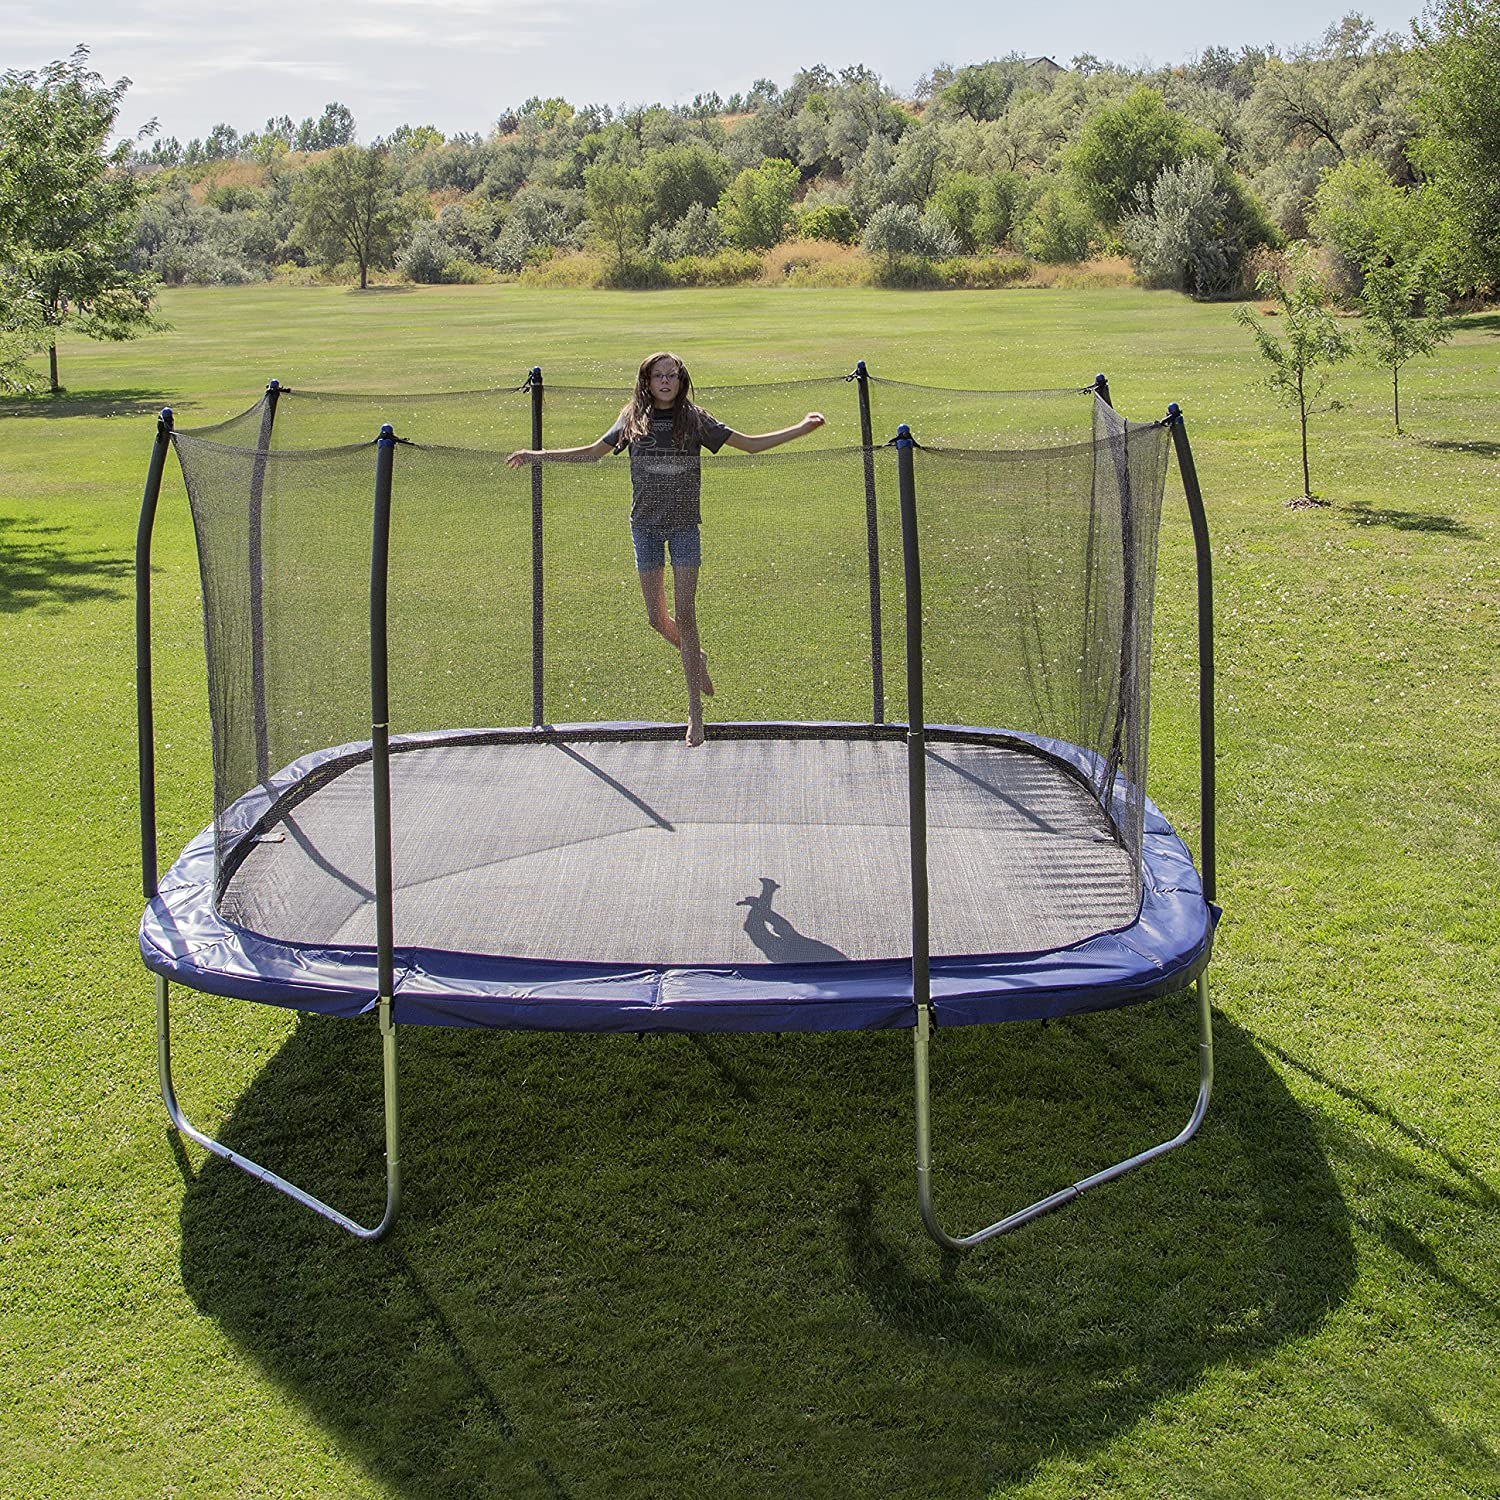 This is an image of Skywalker 14 ft Square Trampoline With Enclosure with a teenage girl jumping.